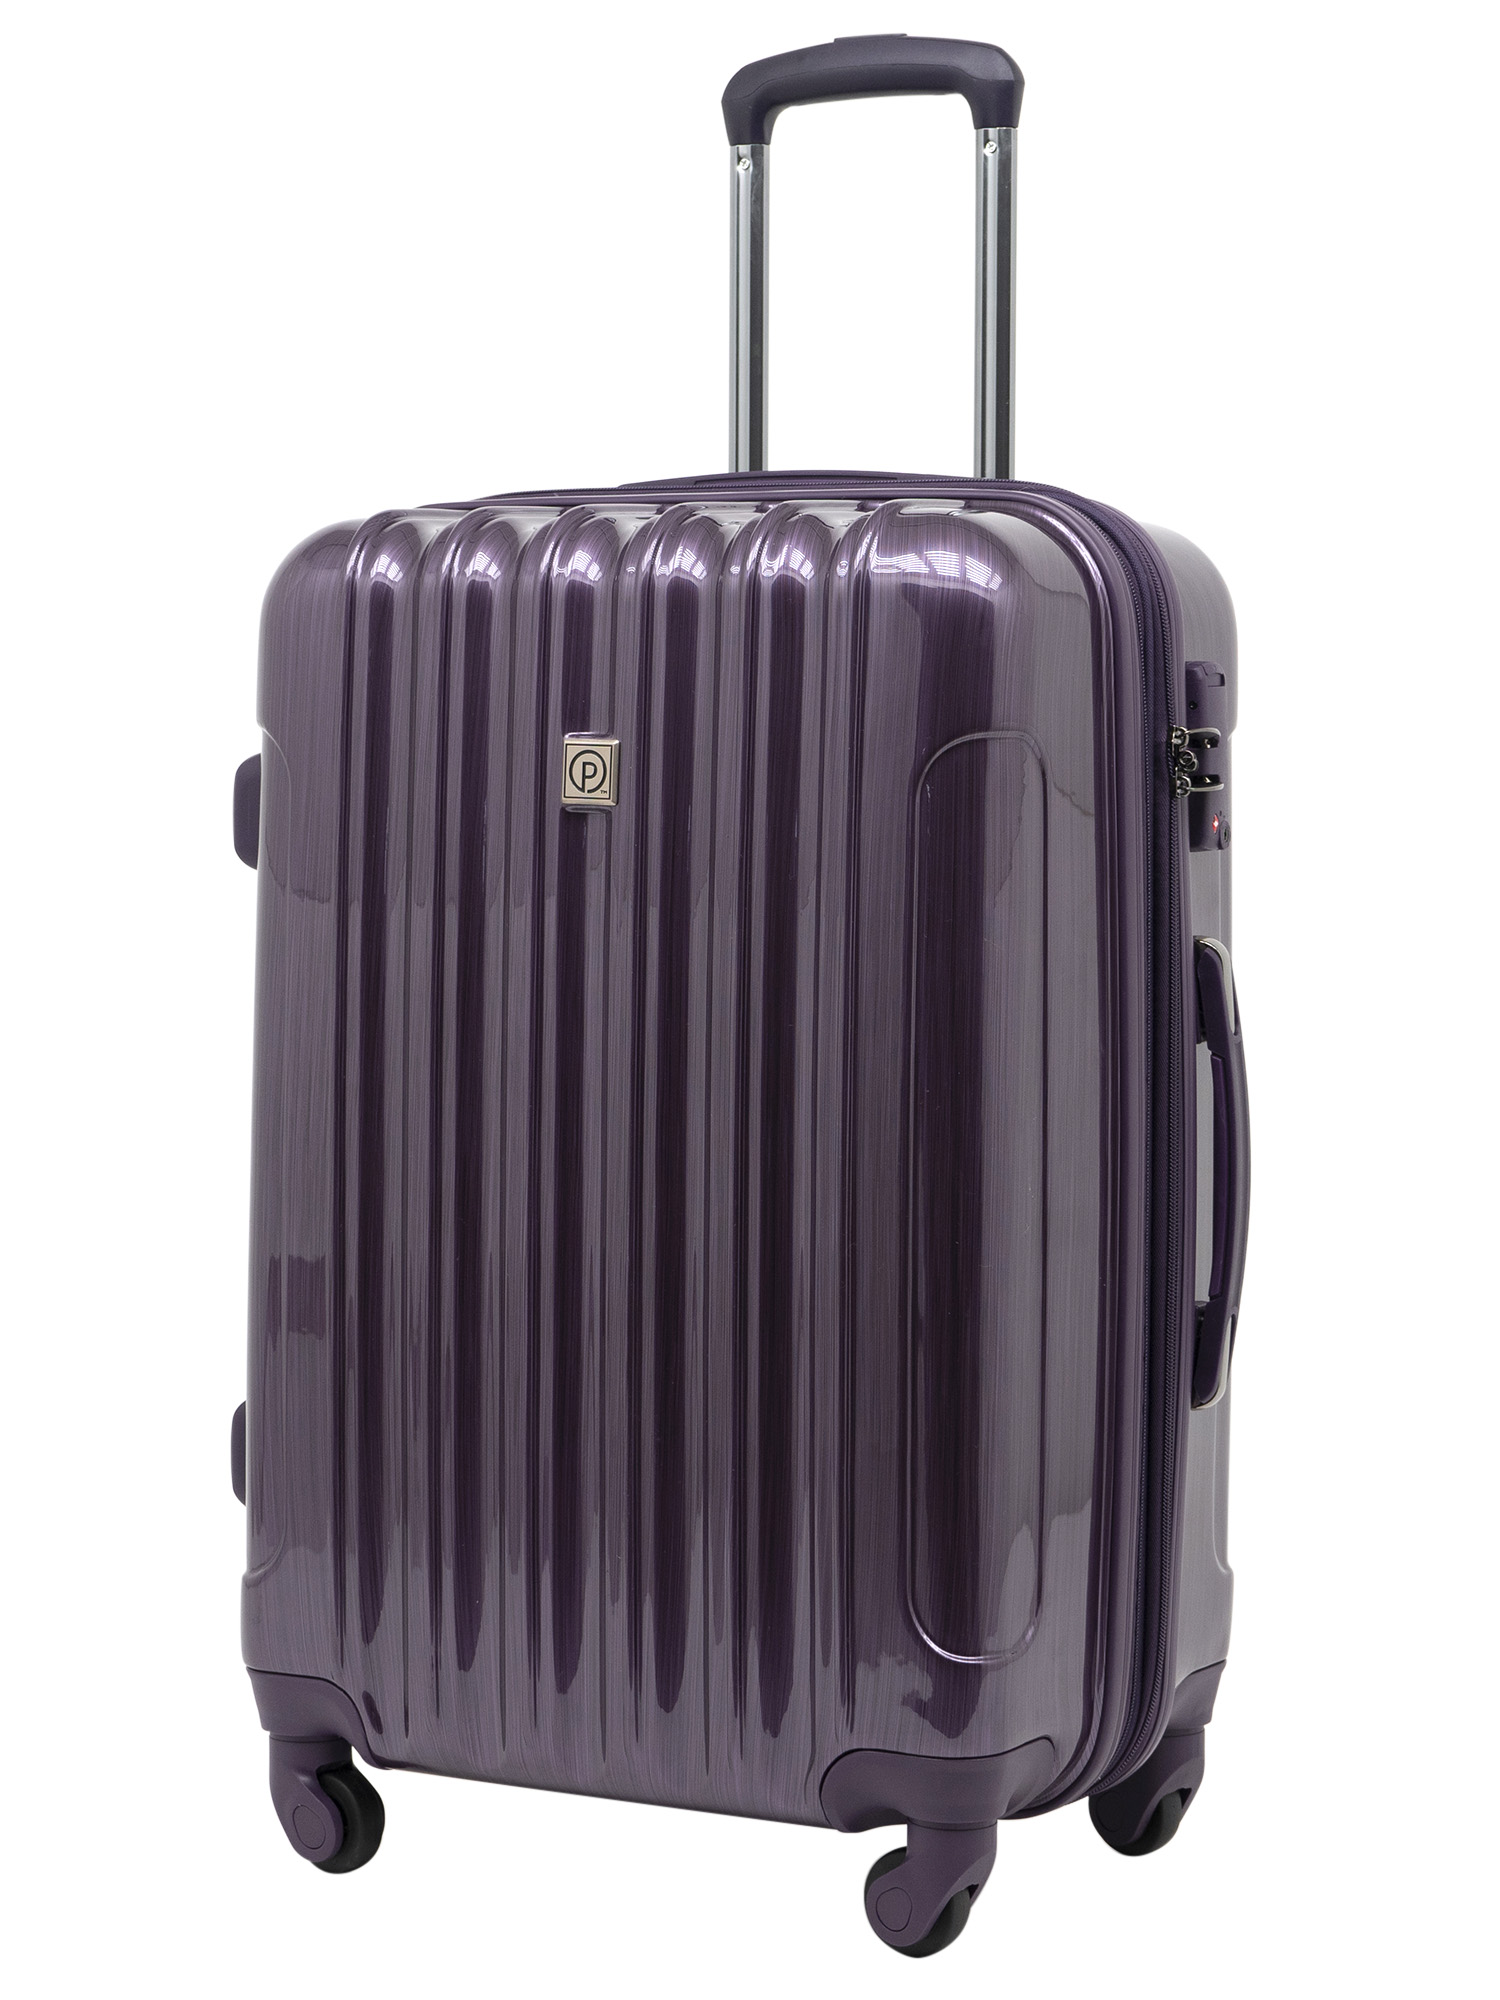 Protege Briarleigh Rolling Upright Luggage Purple (Checked or Carry On)